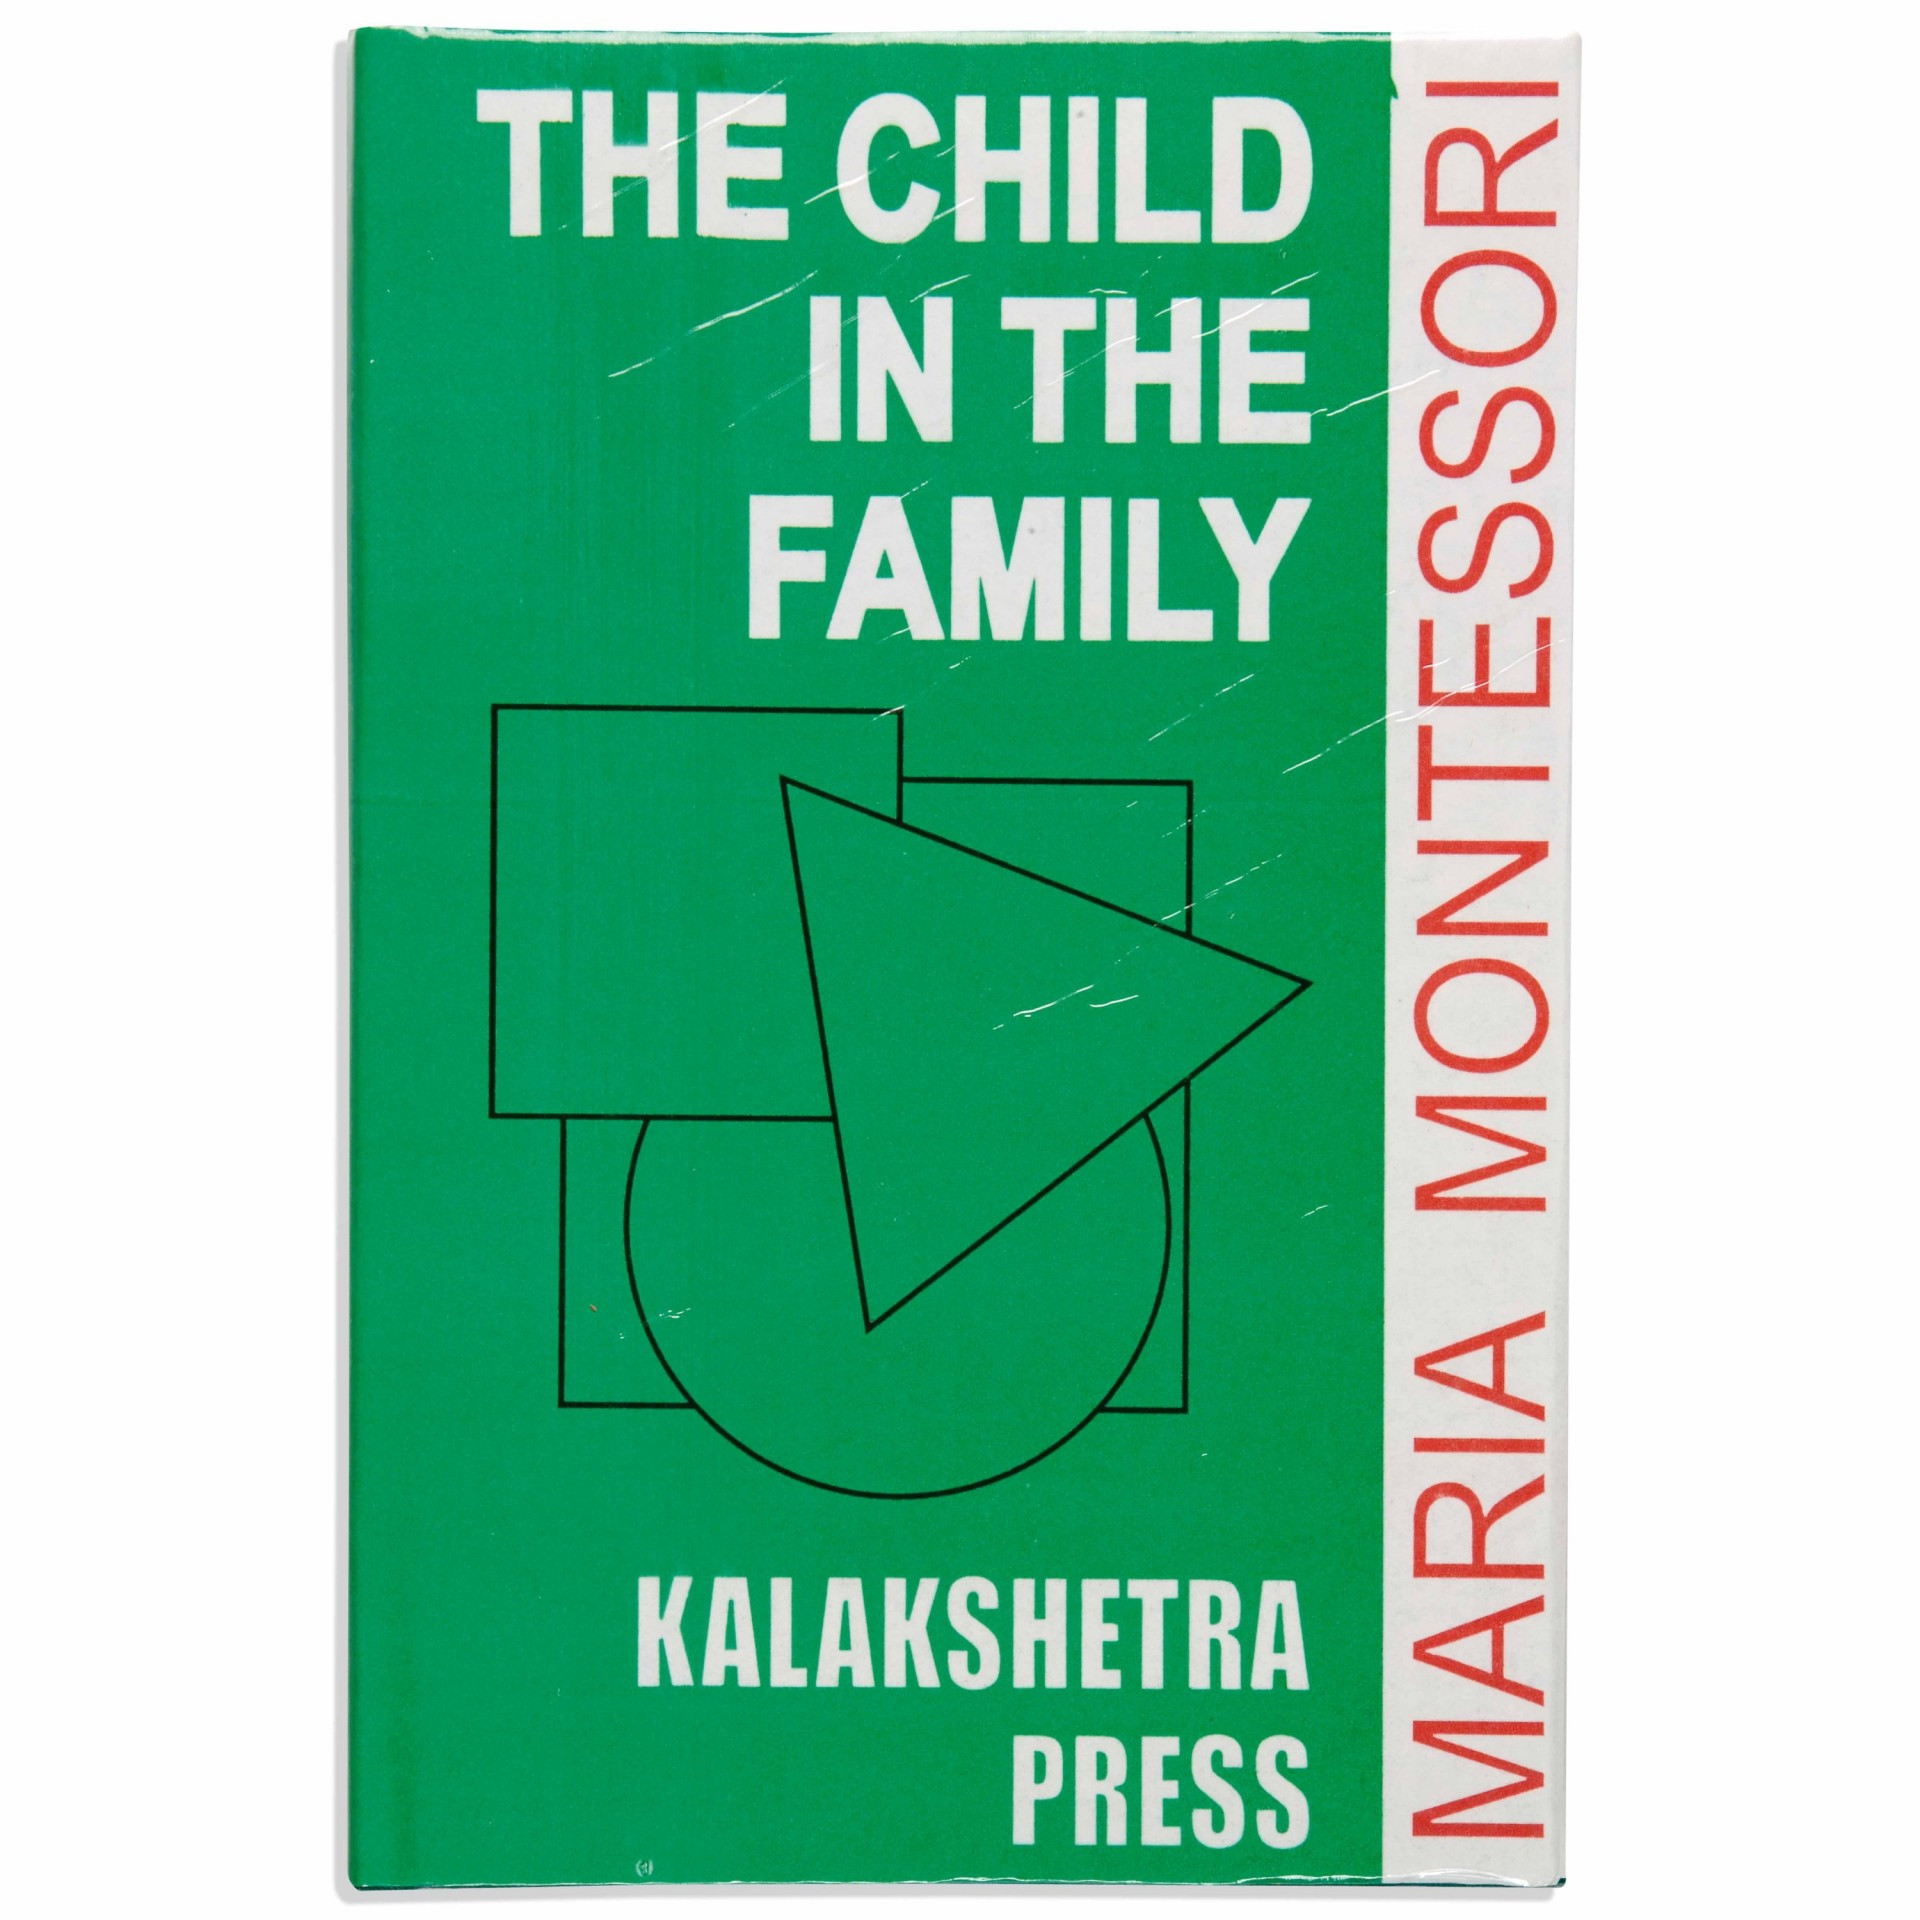 The Child in the Family (Kalakshetra Press Edition) _ Maria Montessori